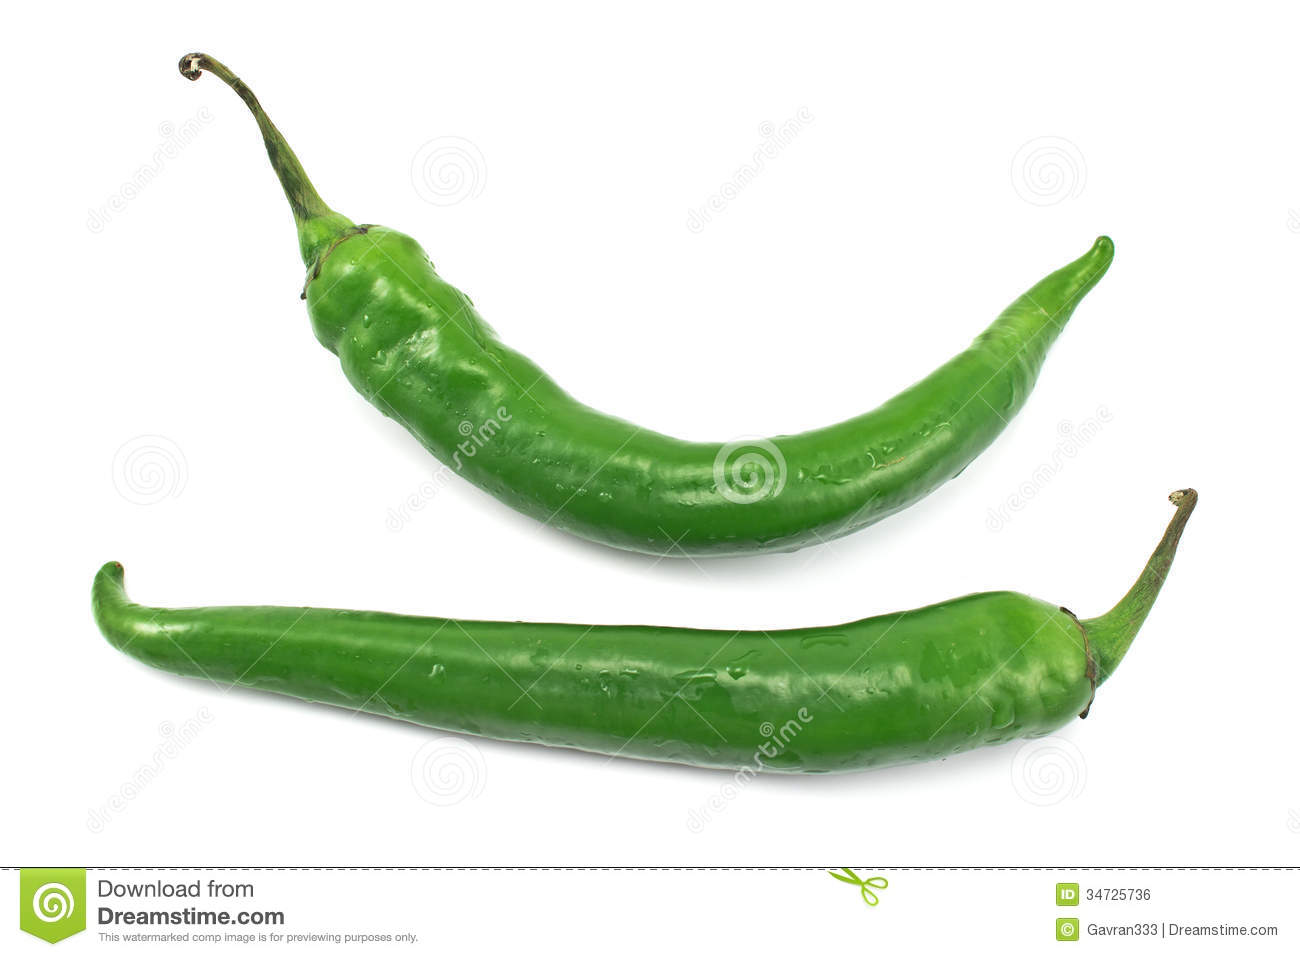 Green Hot Pepper Royalty Free Stock Image - Image: 34725736